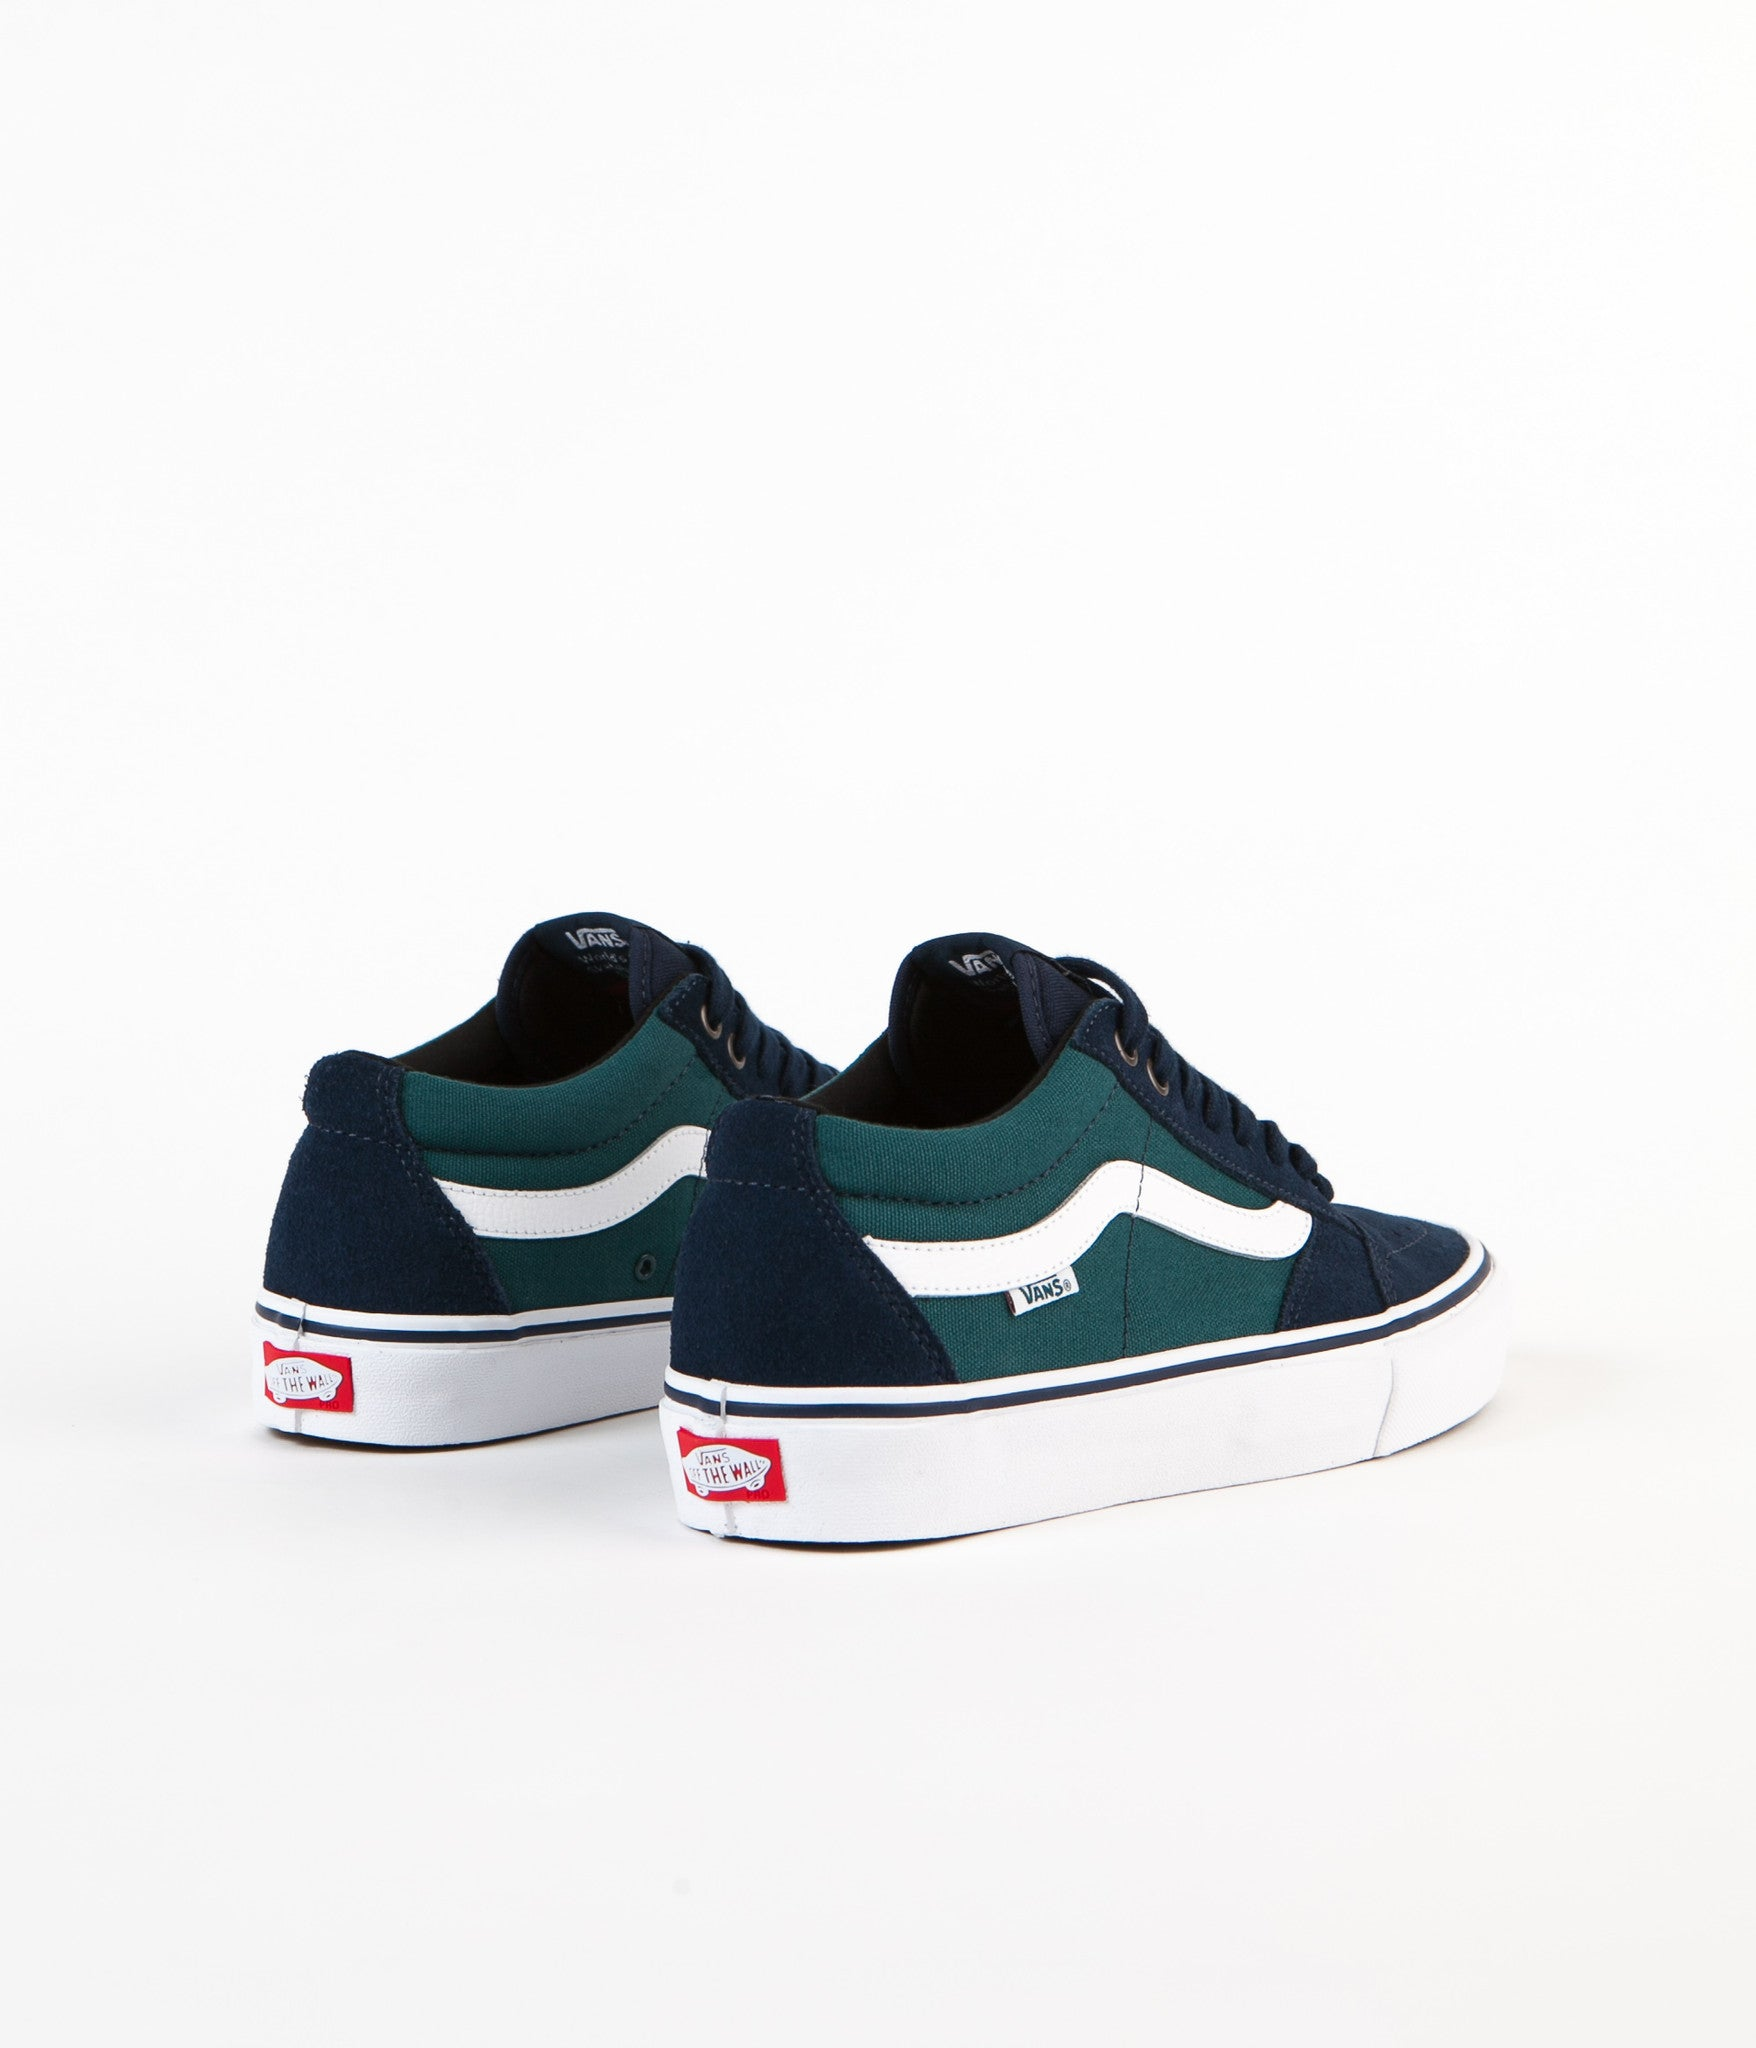 Vans TNT SG Shoes - Dress Blues / Deep Teal